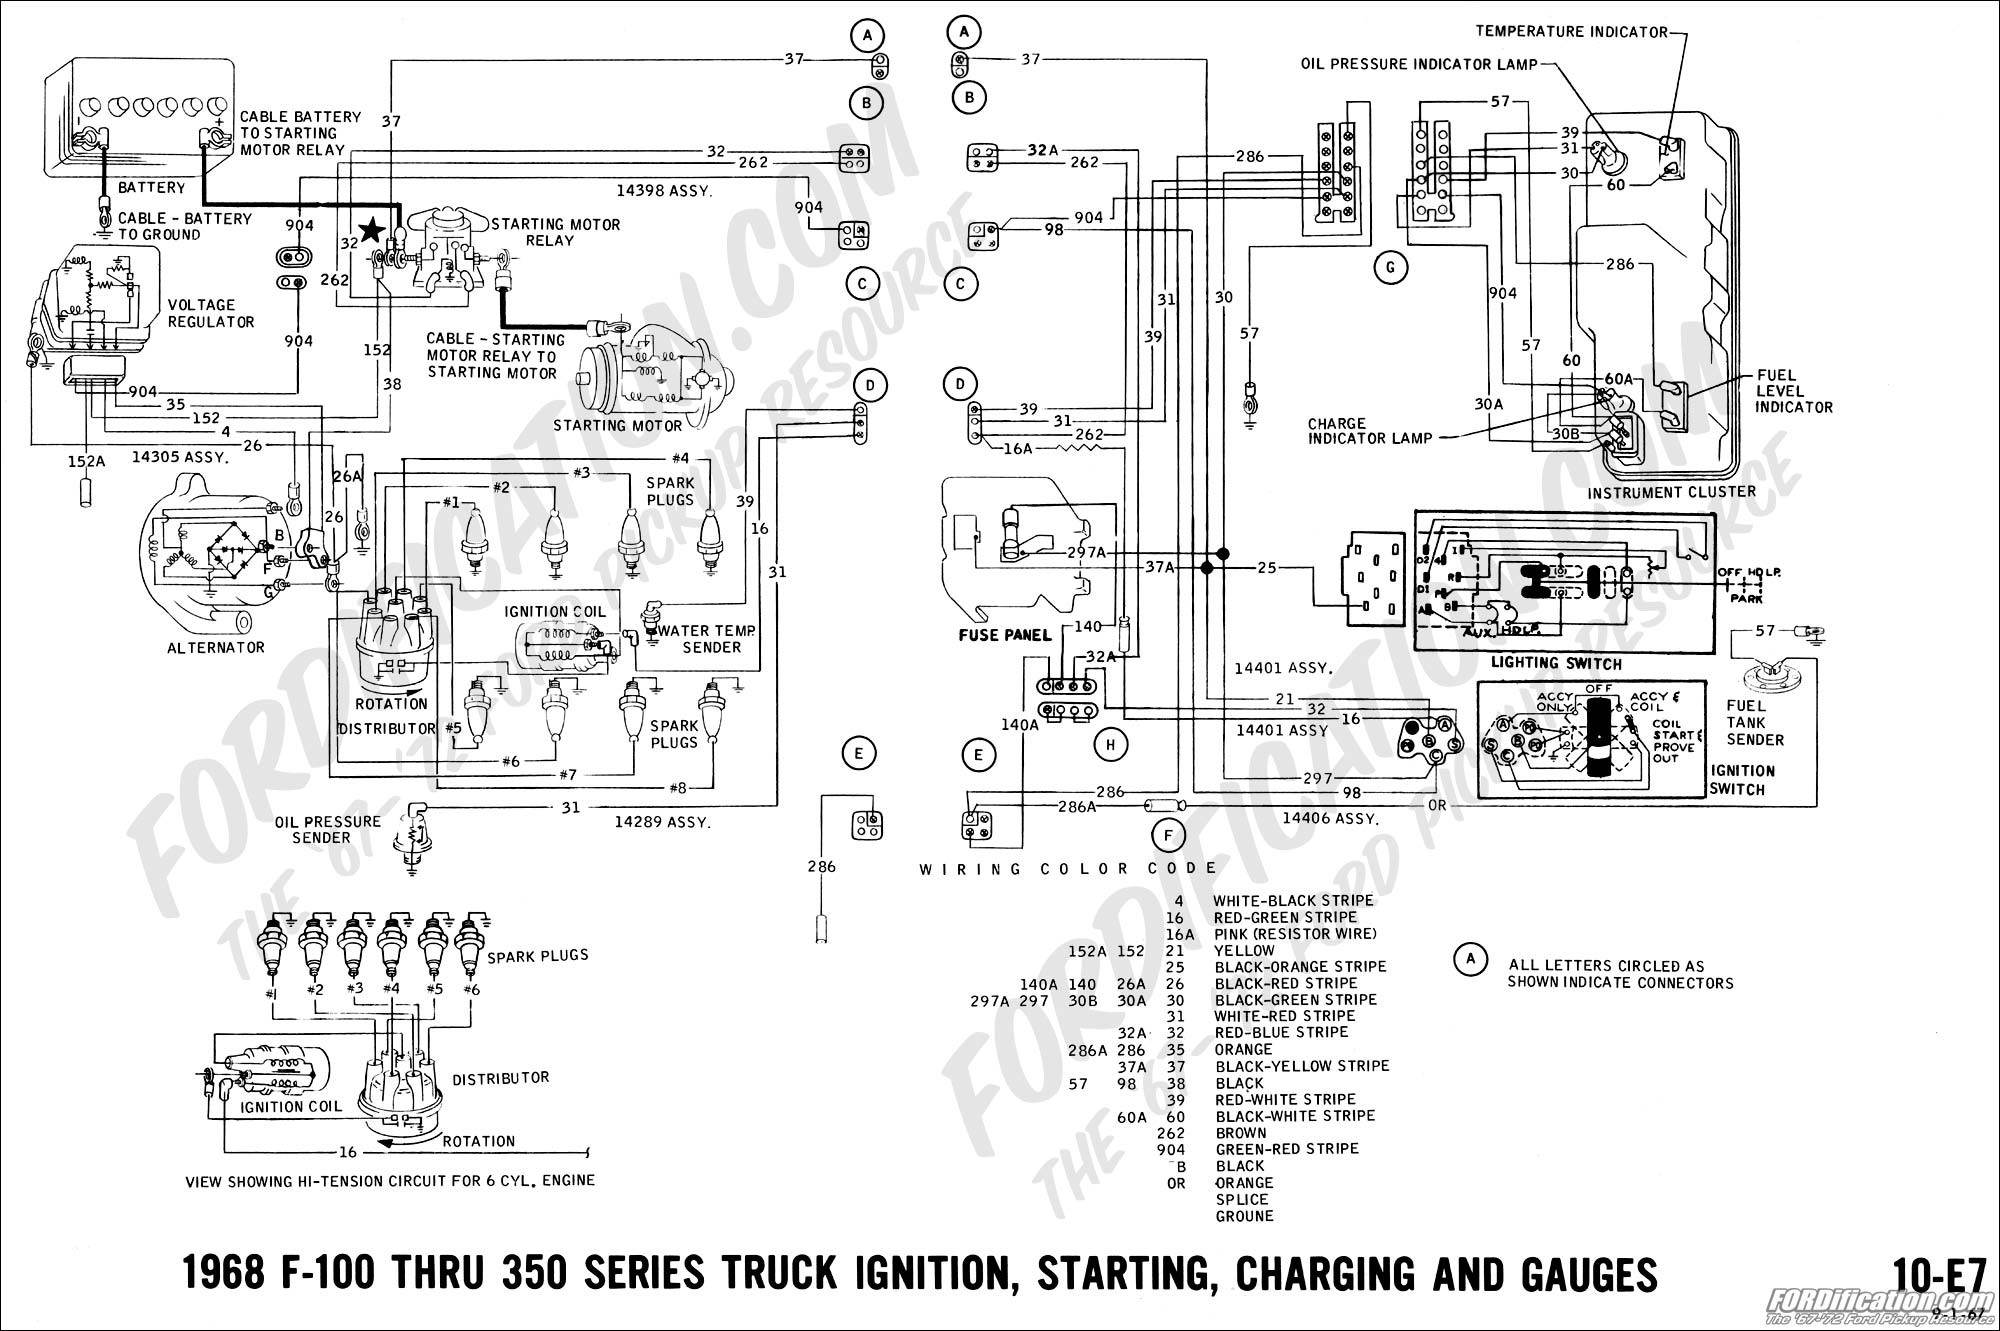 1995 ford ranger wiper wiring diagram 2000 jeep wrangler front suspension 2001 taurus fuse library